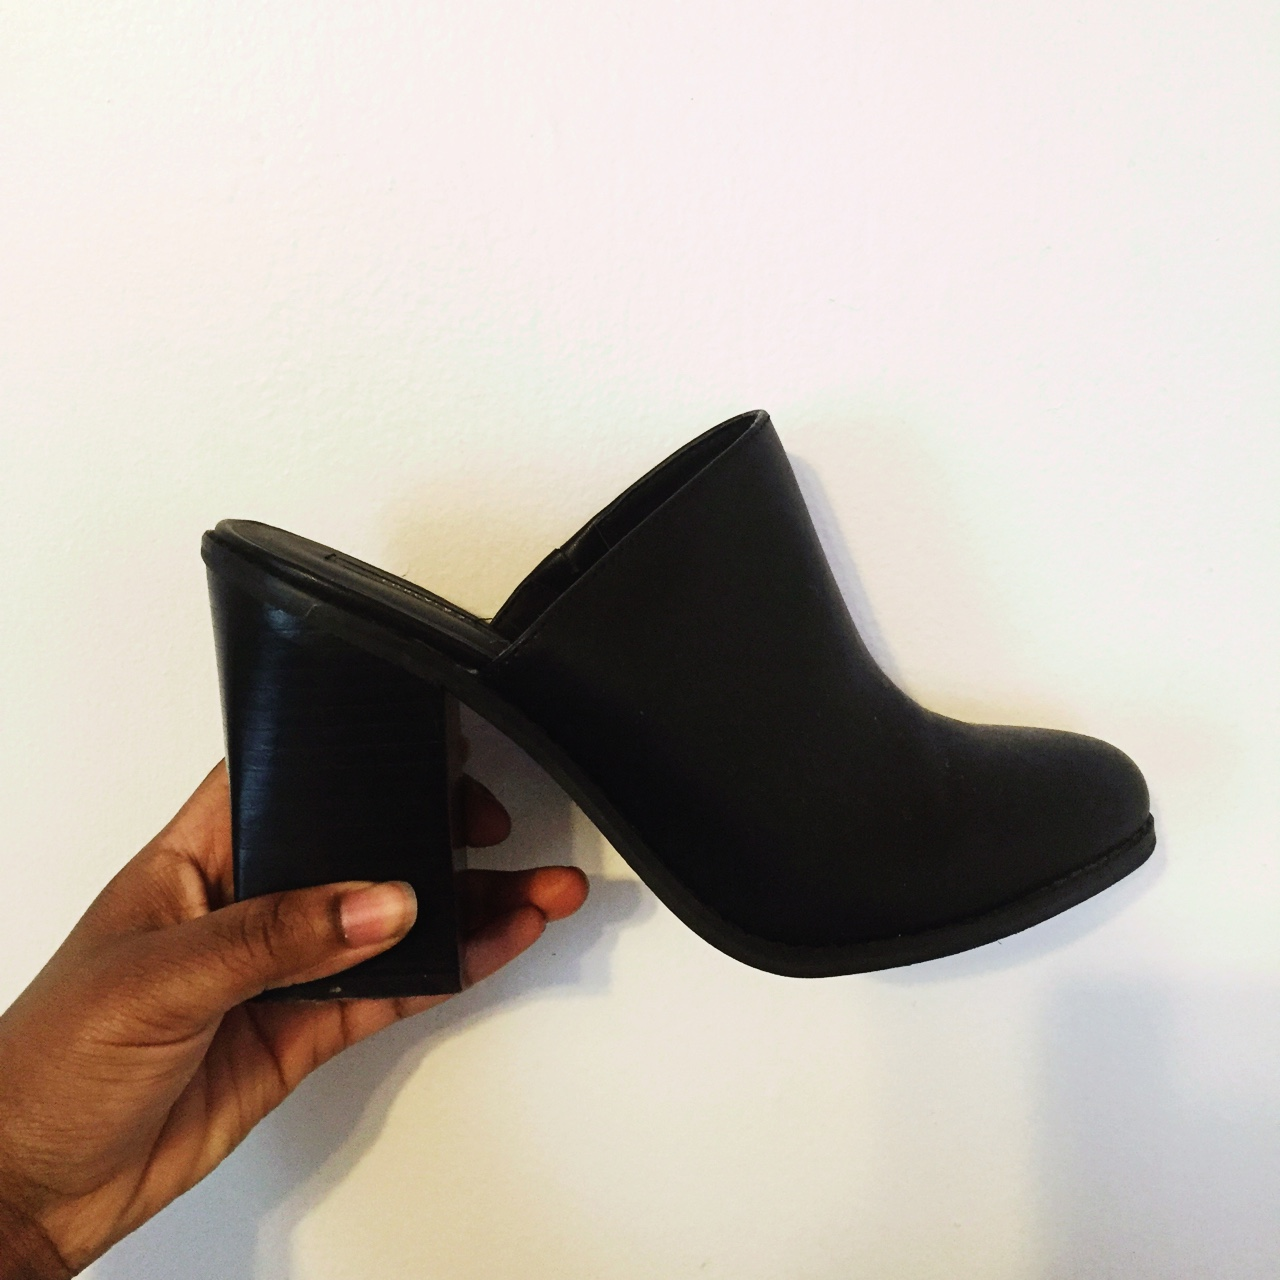 Forever 21 Black Mules. Not recommended